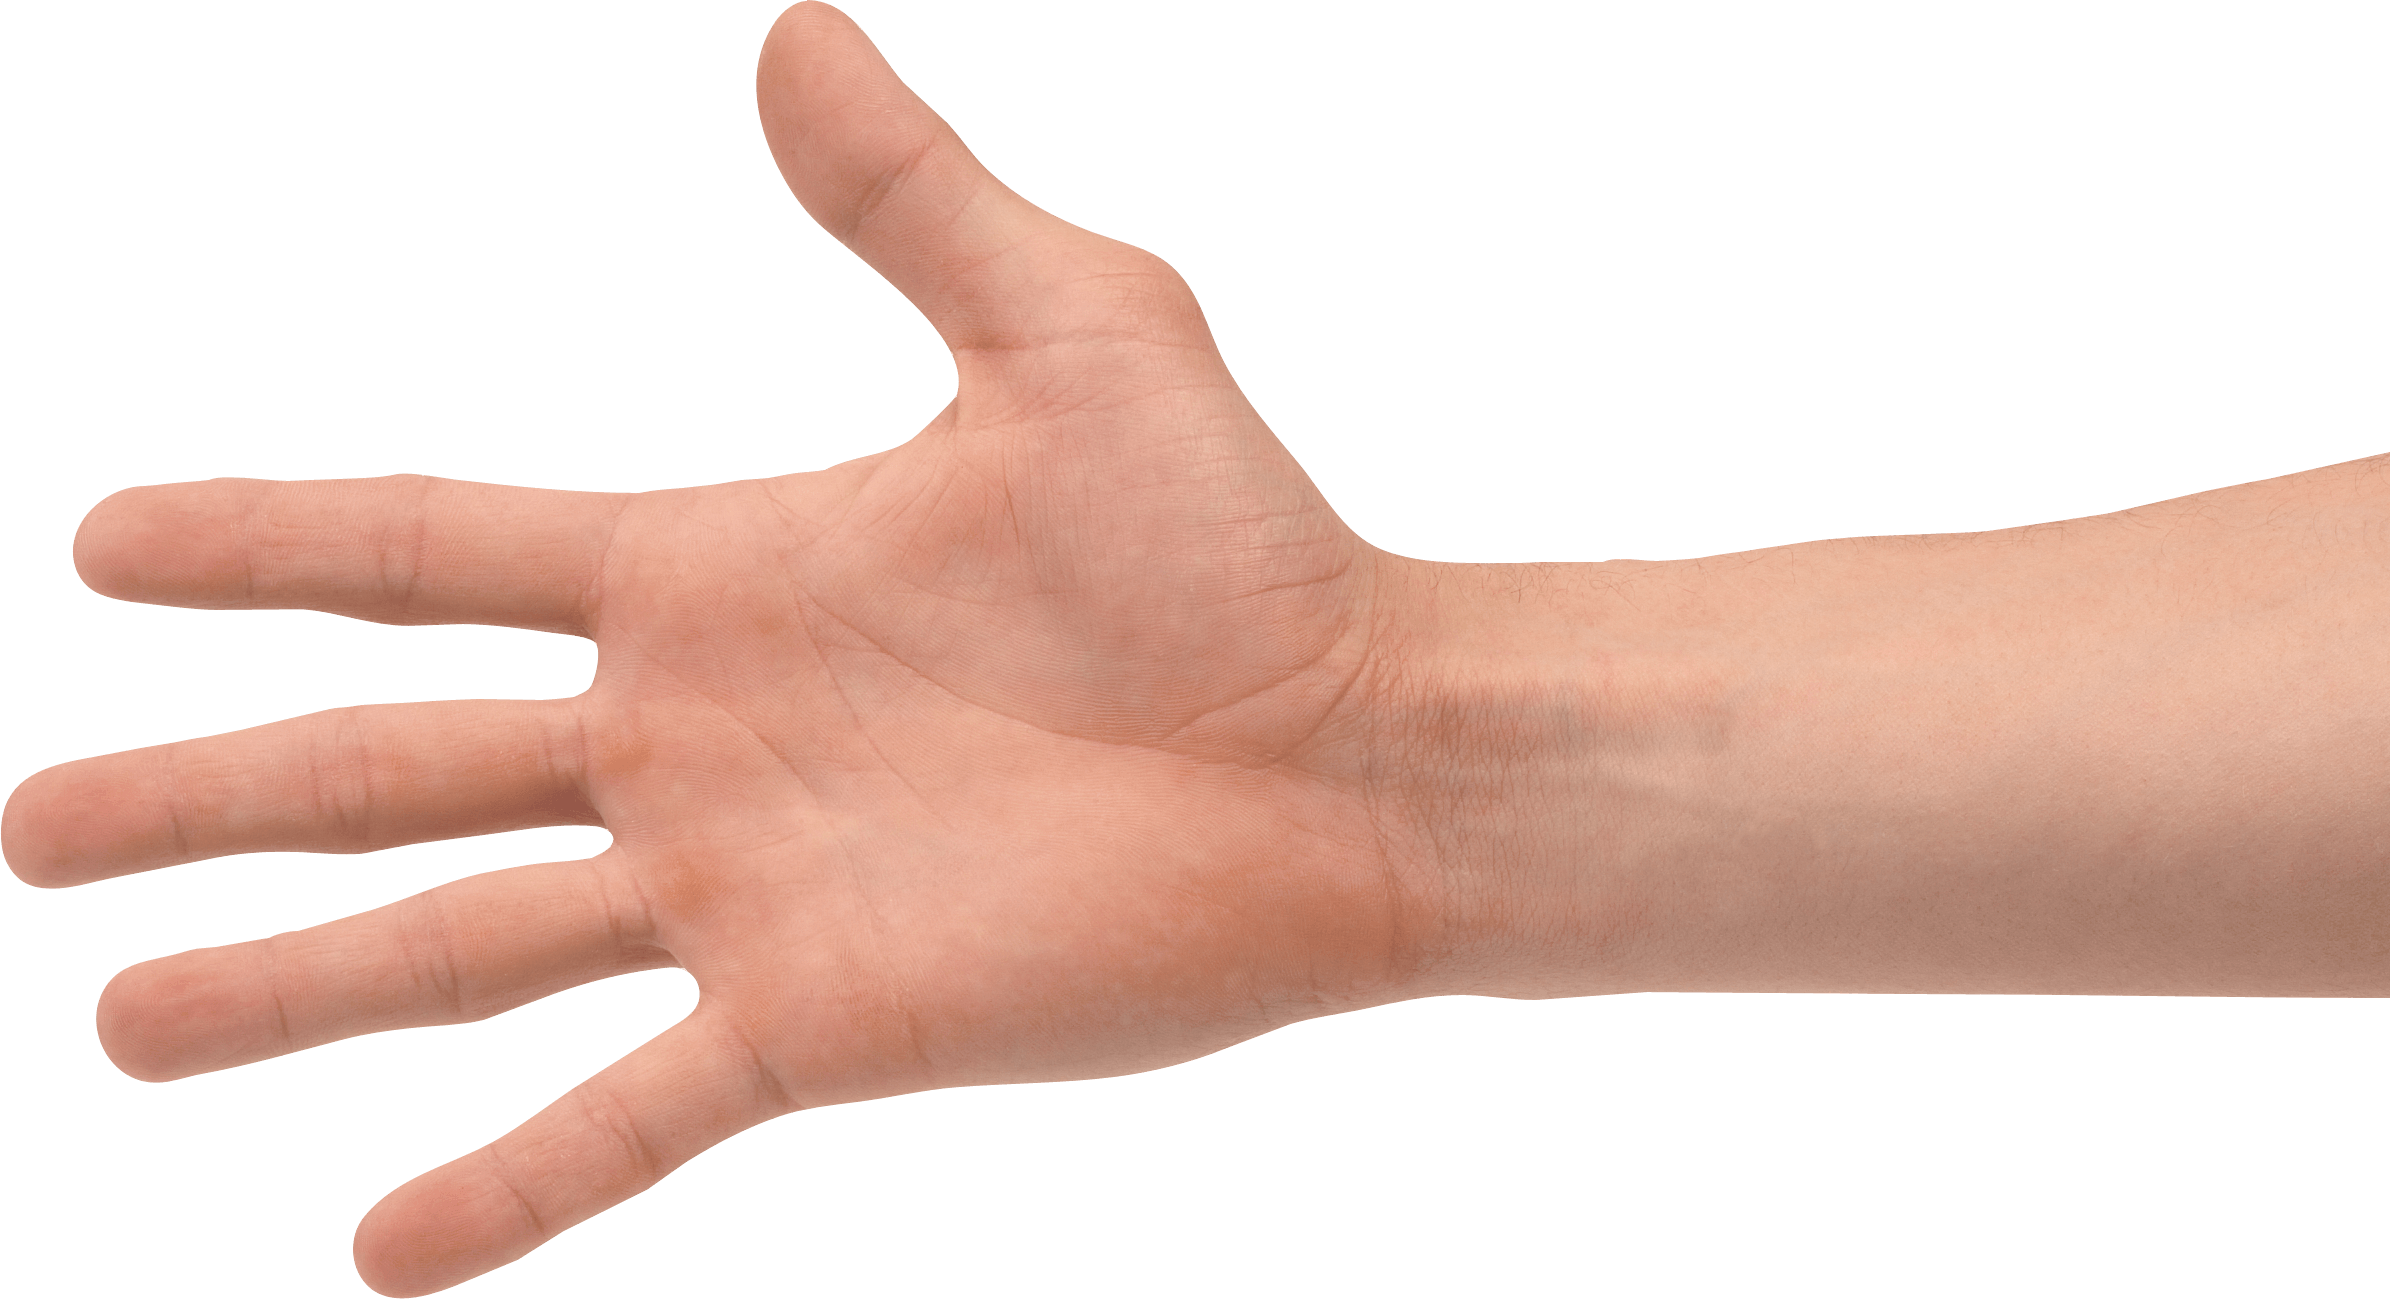 Hands transparent images pluspng. Hand png free library